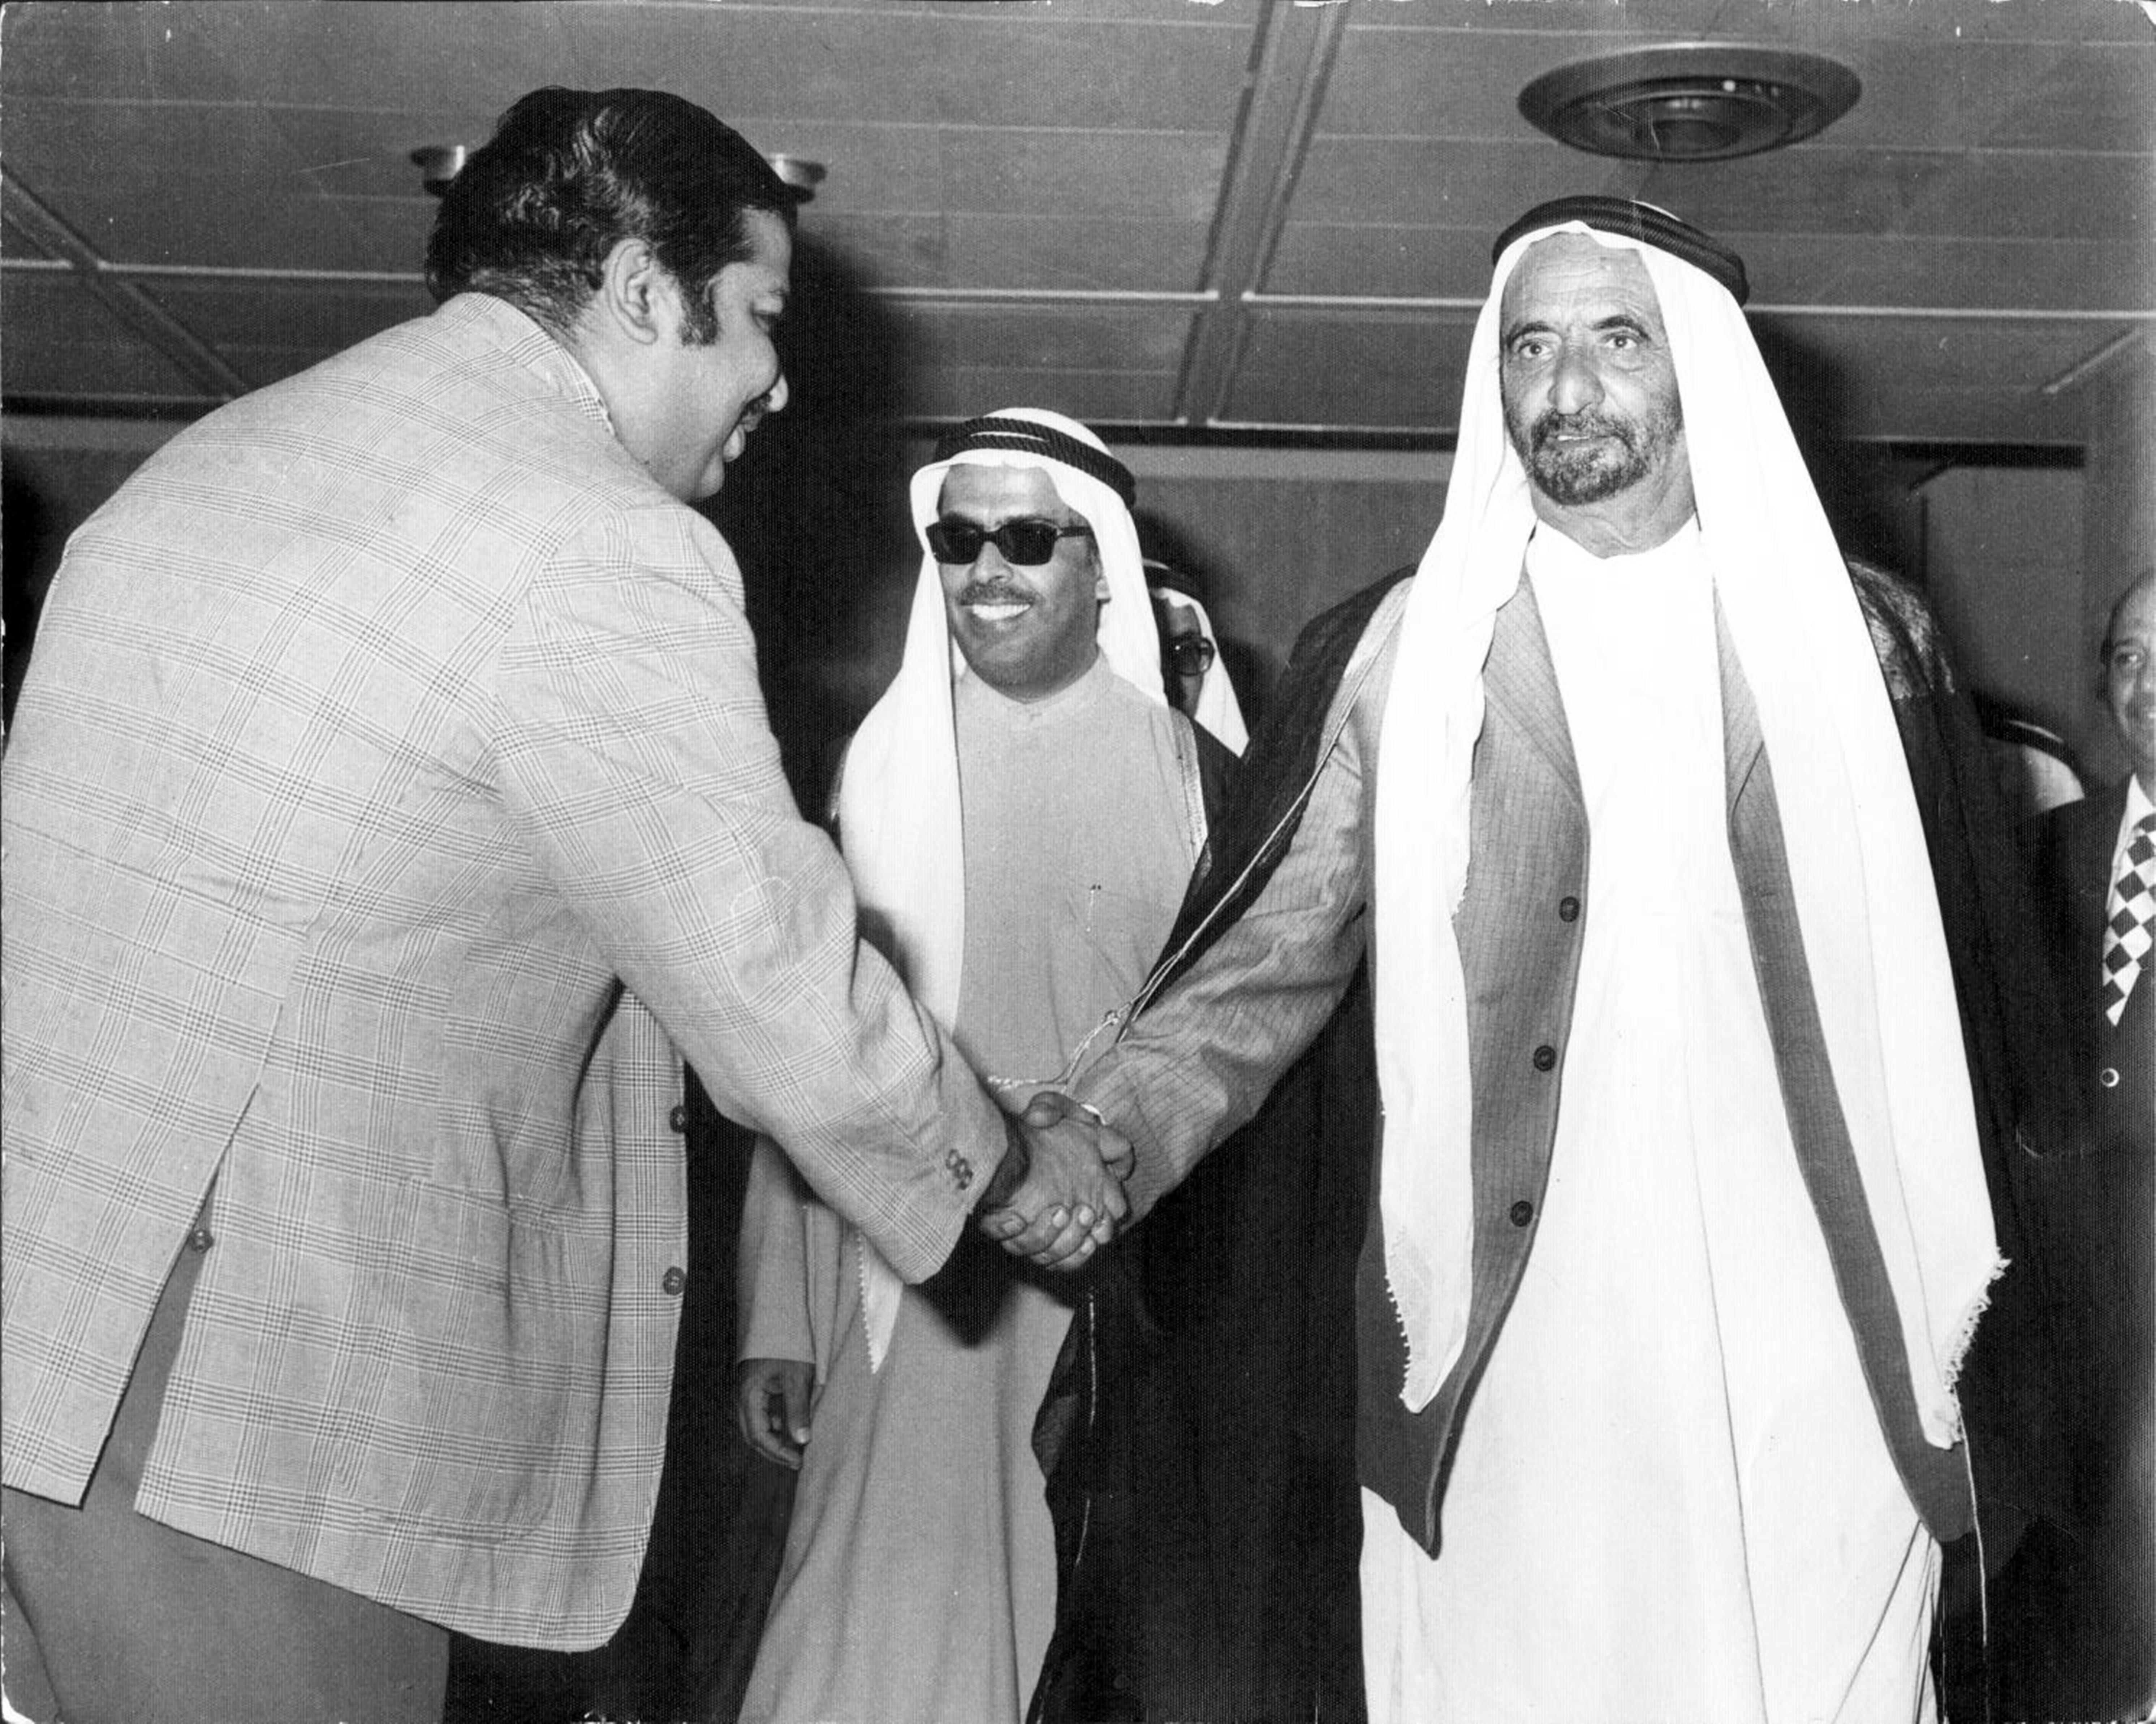 Meeting the late HH Sheikh Rashid bin Saeed Al Maktoum, then Ruler of Dubai, at a trade fair organized by Dubai Chamber of Commerce and Industry in the late 1960s. Saif Al Ghurair, the then President of the Chamber is in the centre. Photo courtesy: ITL Cosmos Group